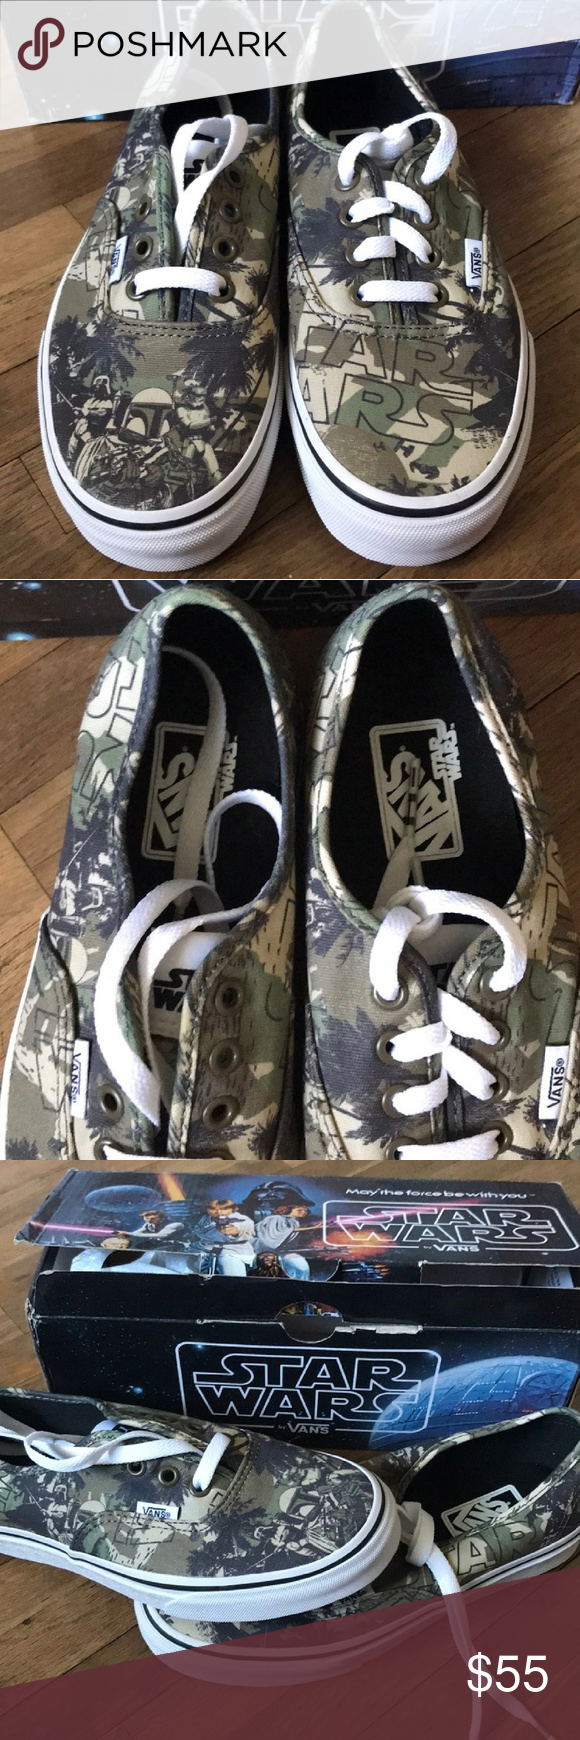 64263101a2 Spotted while shopping on Poshmark  Star Wars Boba Fett Vans Shoes 6.5  Womens Camo!  poshmark  fashion  shopping  style  Vans  Shoes